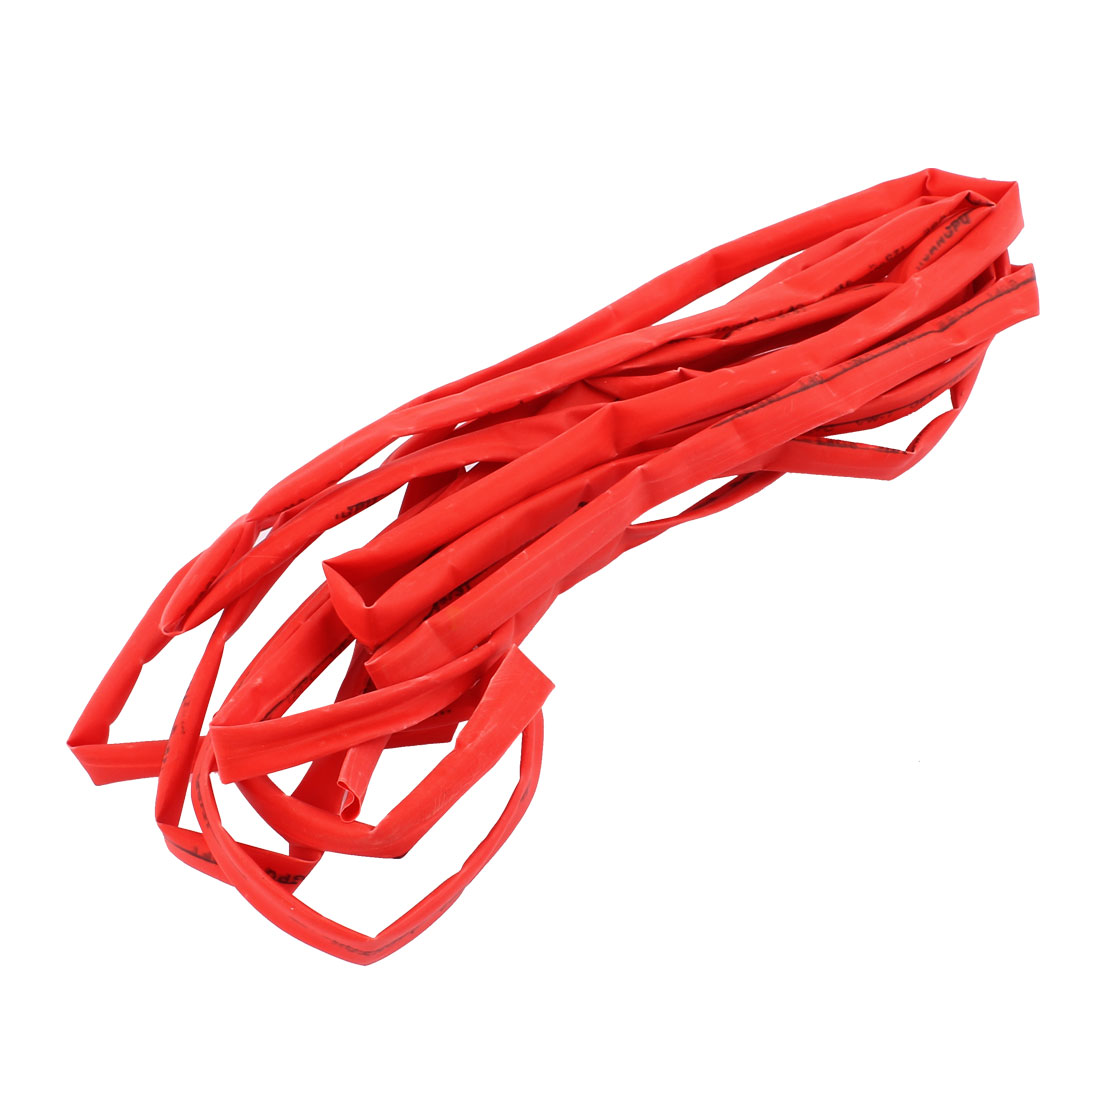 4.2M Length 12mm Dia Polyolefin Heat Shrinkable Tube Sleeving Red